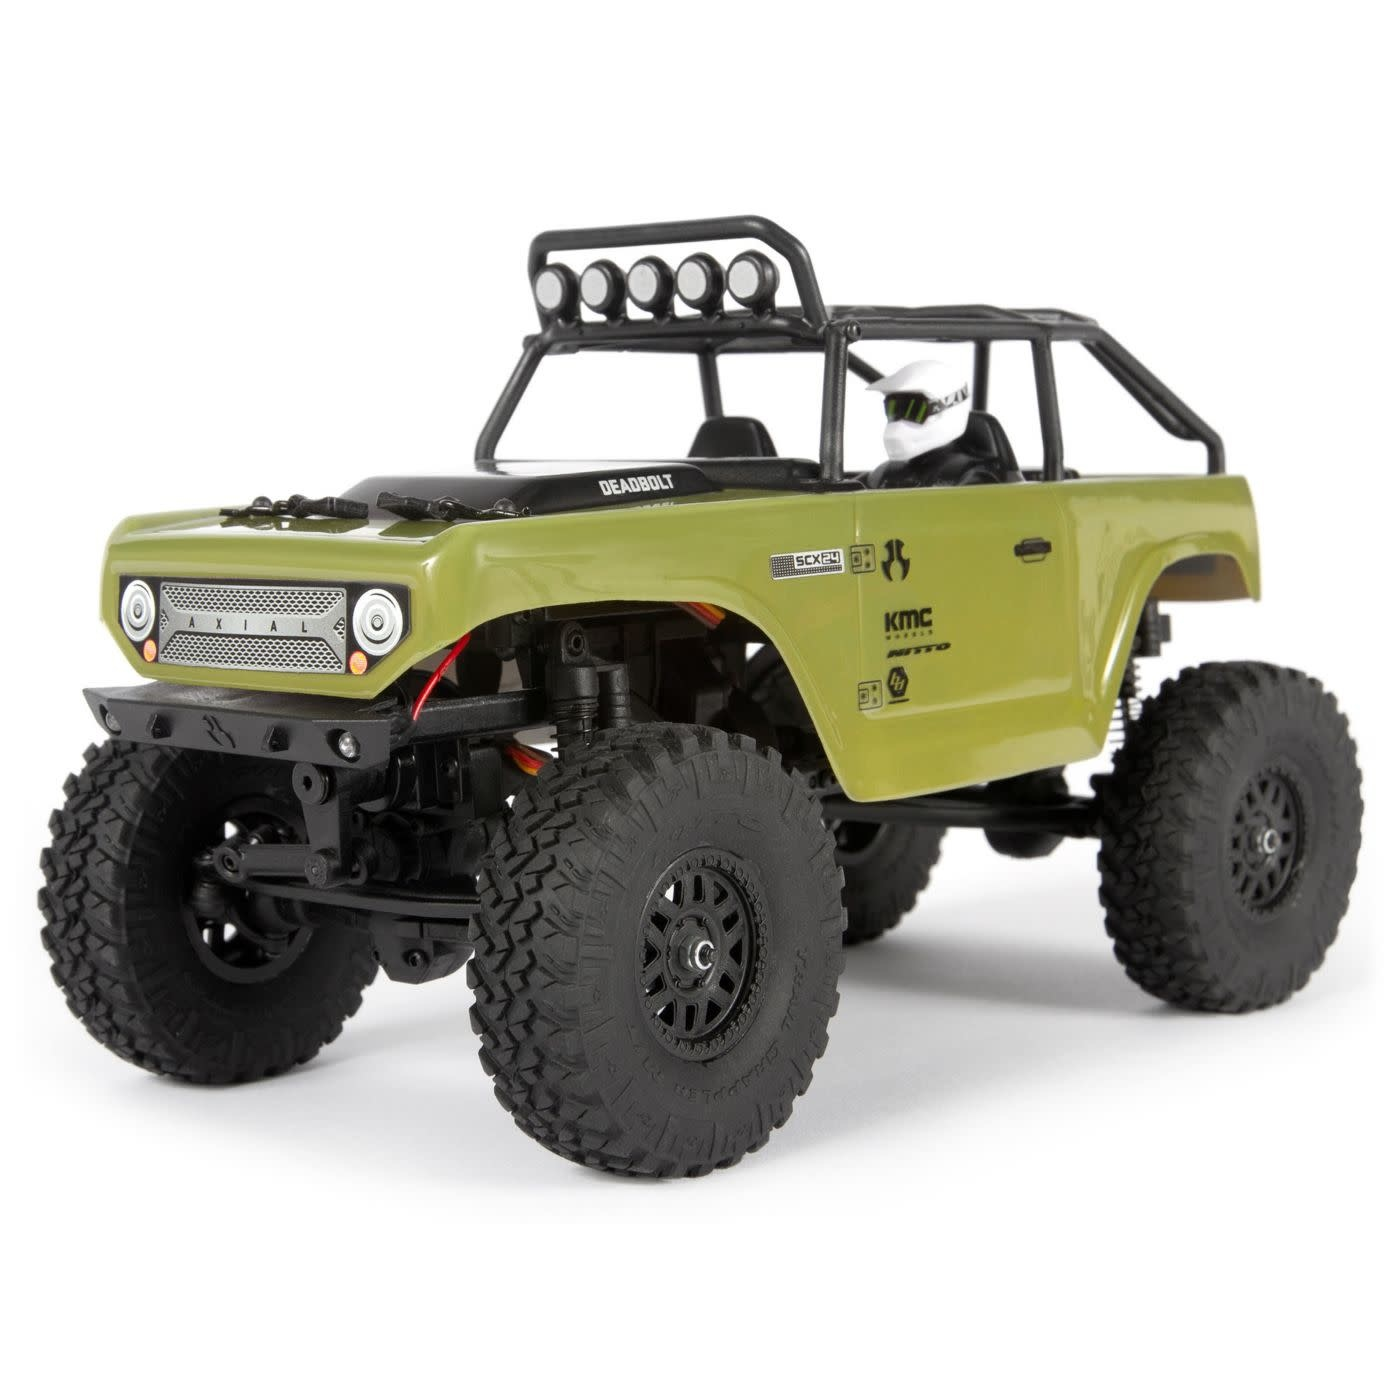 AXI90081T2 1/24 SCX24 Deadbolt 4WD Rock Crawler Brushed RTR, Green